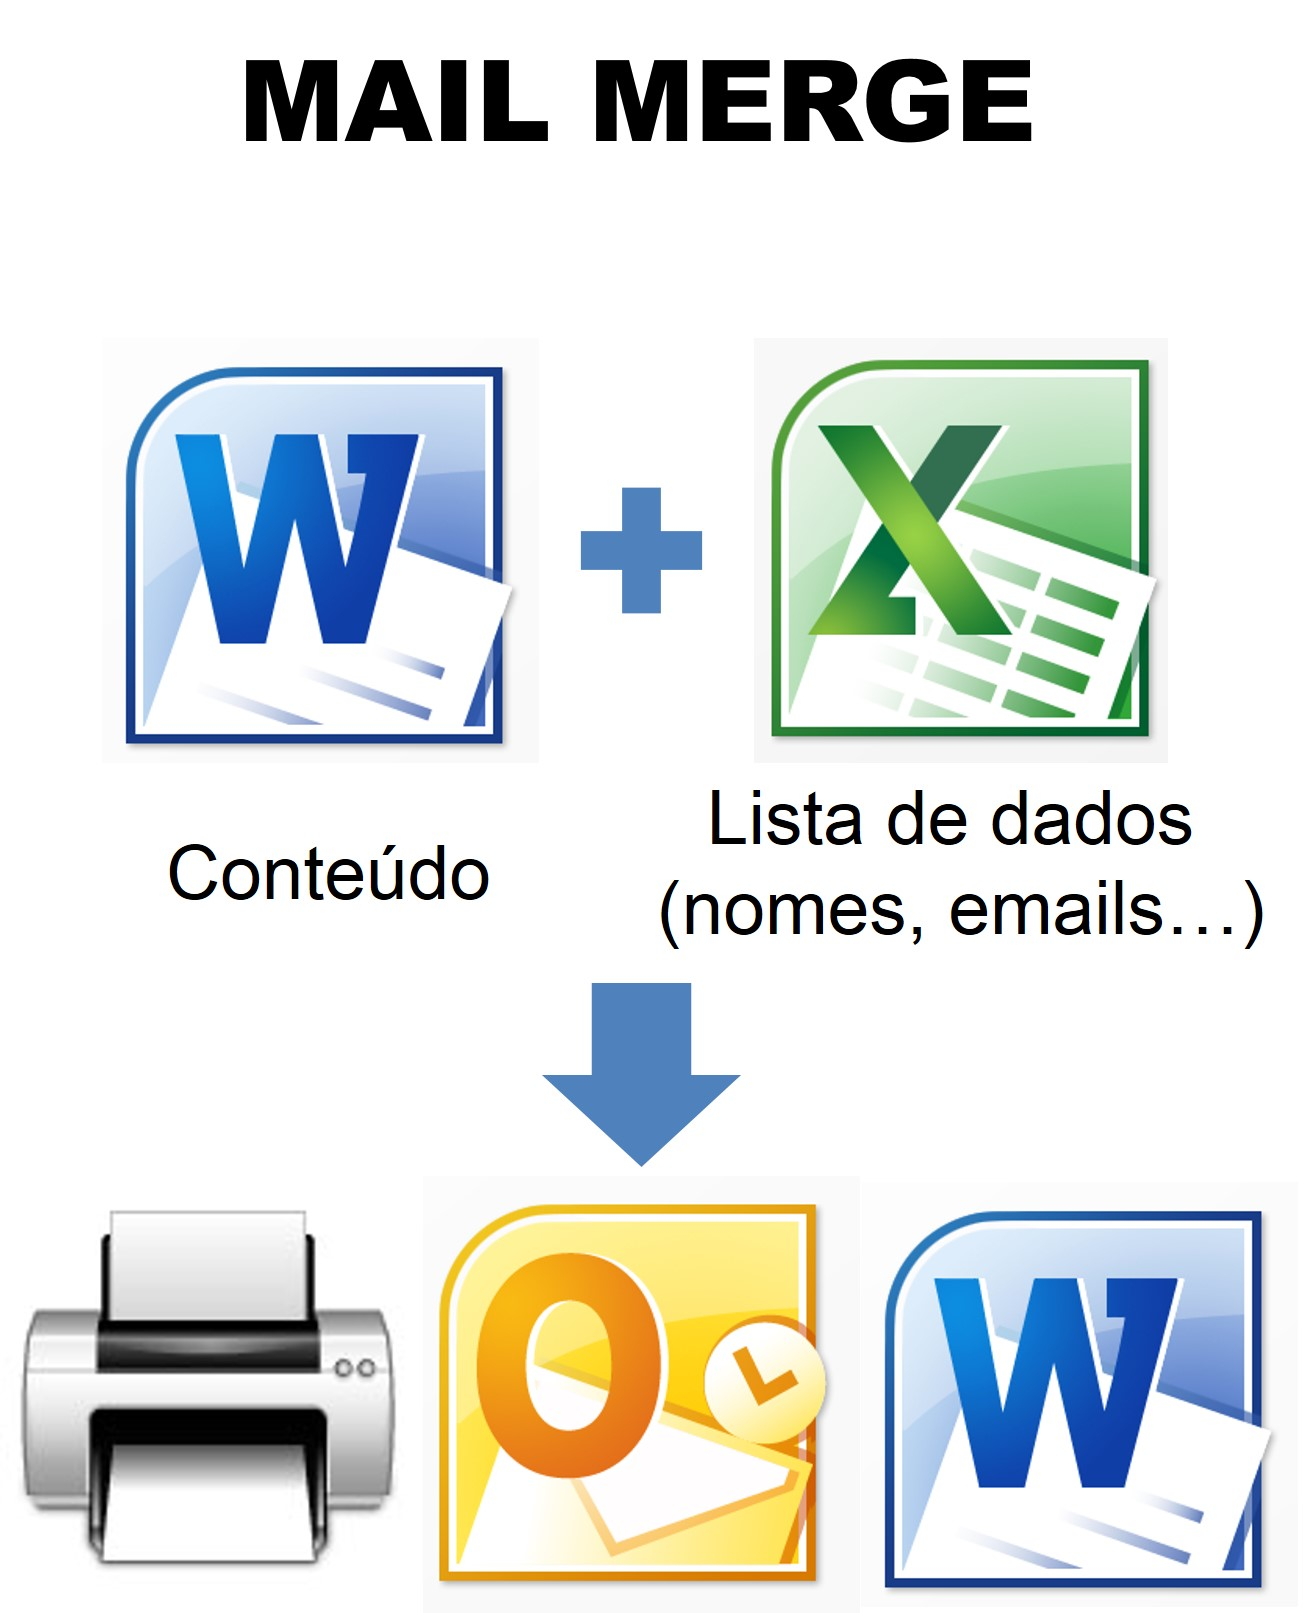 mail merge como enviar emails autimaticamente